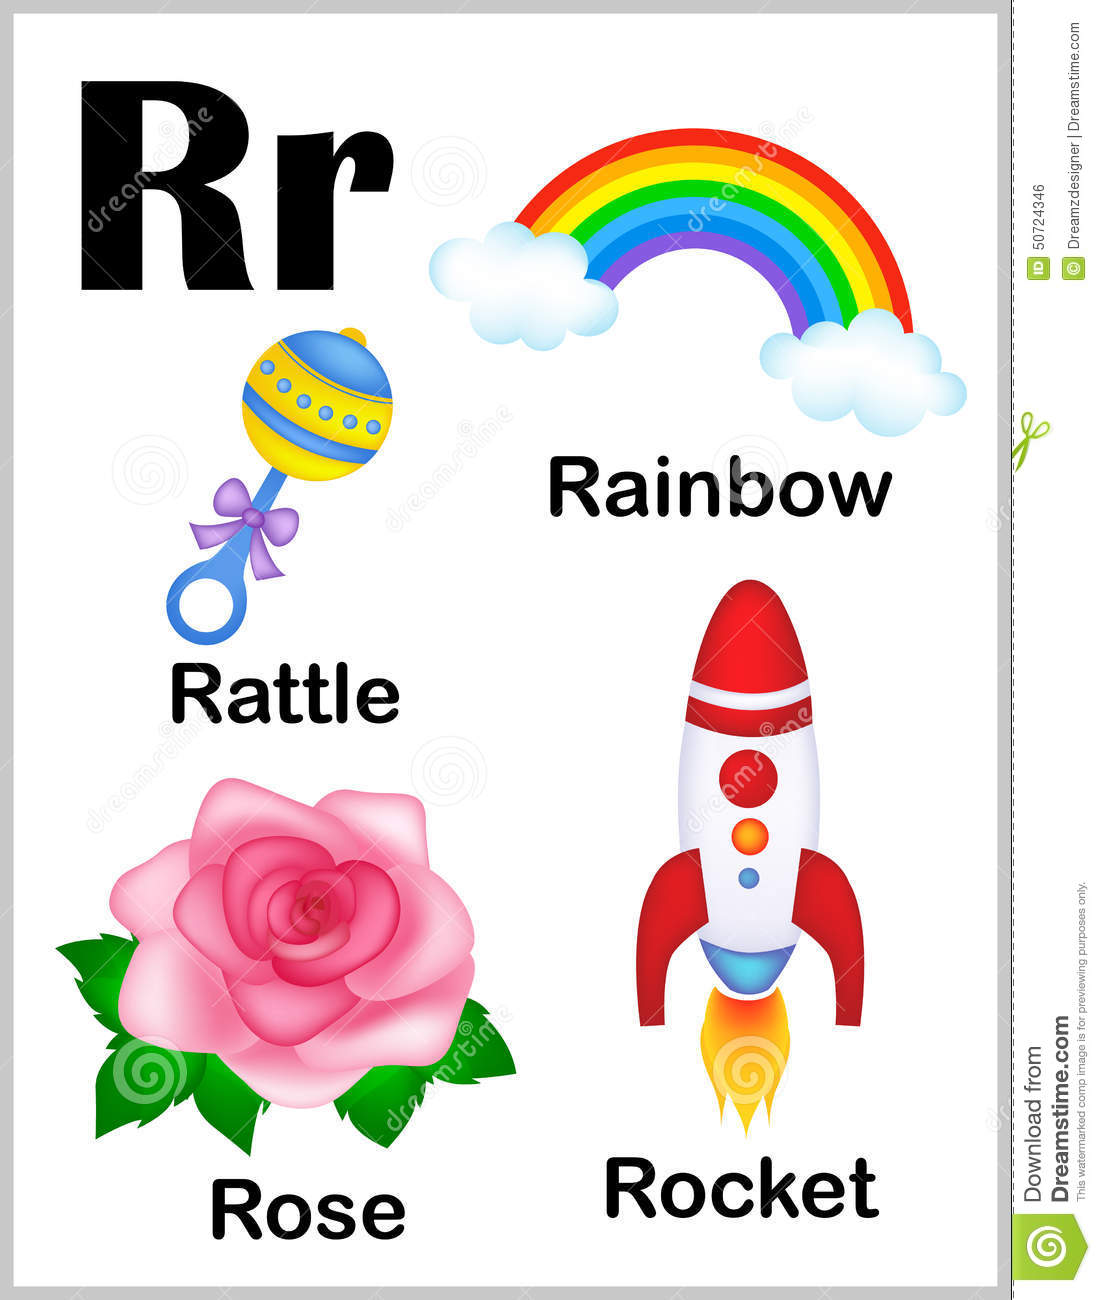 R Words Clipart.